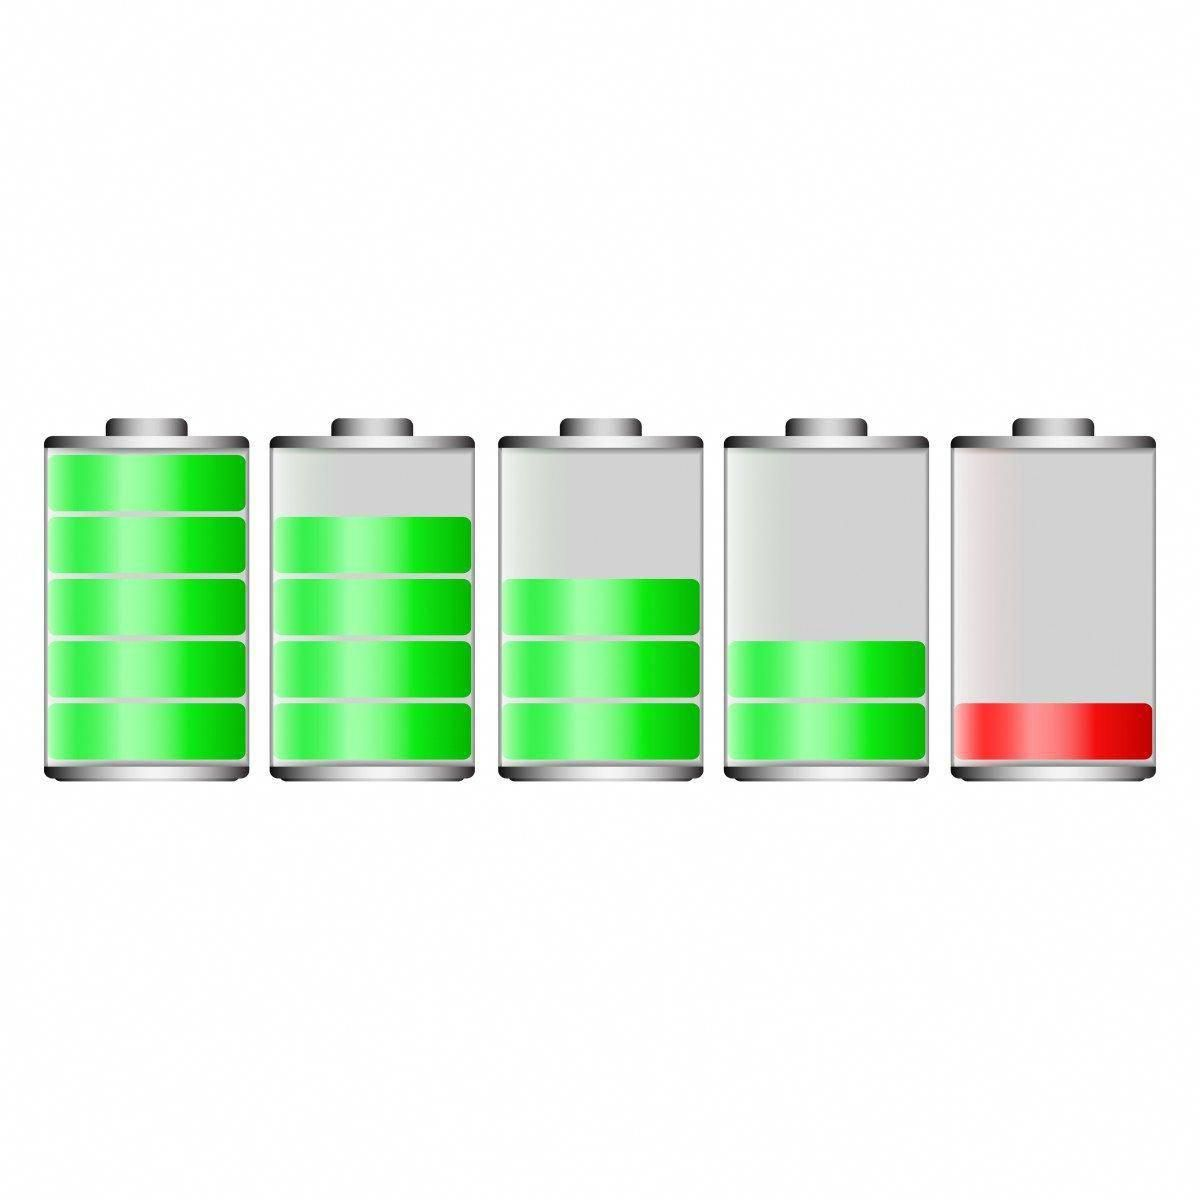 Cwru Researchers Efficiently Charge A Lithium Ion Battery With Solar Cell Solarpanels Sola In 2020 Monocrystalline Solar Panels Cheap Solar Panels Solar Energy Panels